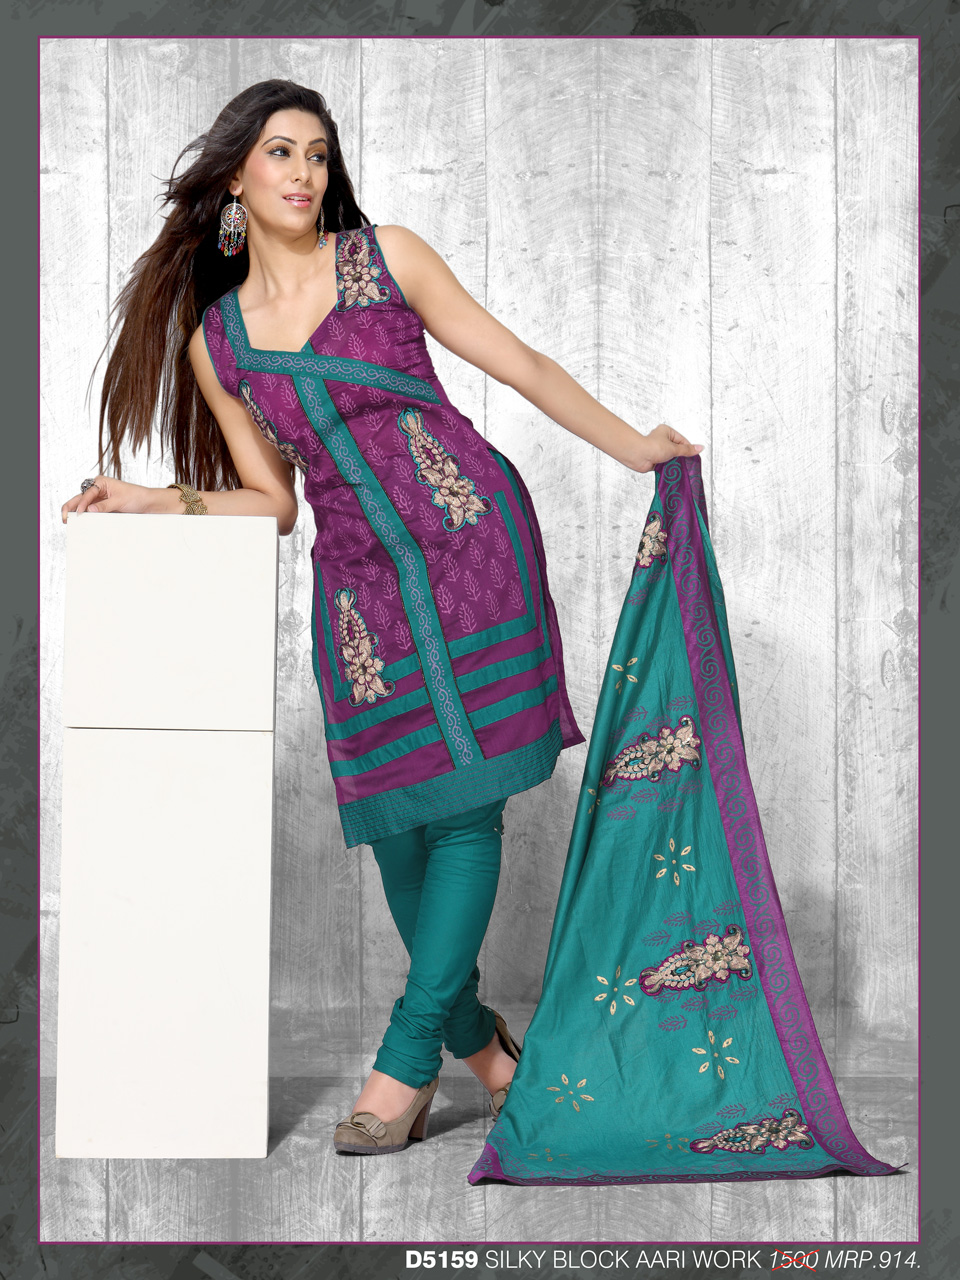 Kalazone Sarees with Price http://kalazonesilkmill.blogspot.in/2012/02/d5159-silky-block-aari-work-price-rs.html#!/2012/02/stardust-awards-2012-saree-watch.html